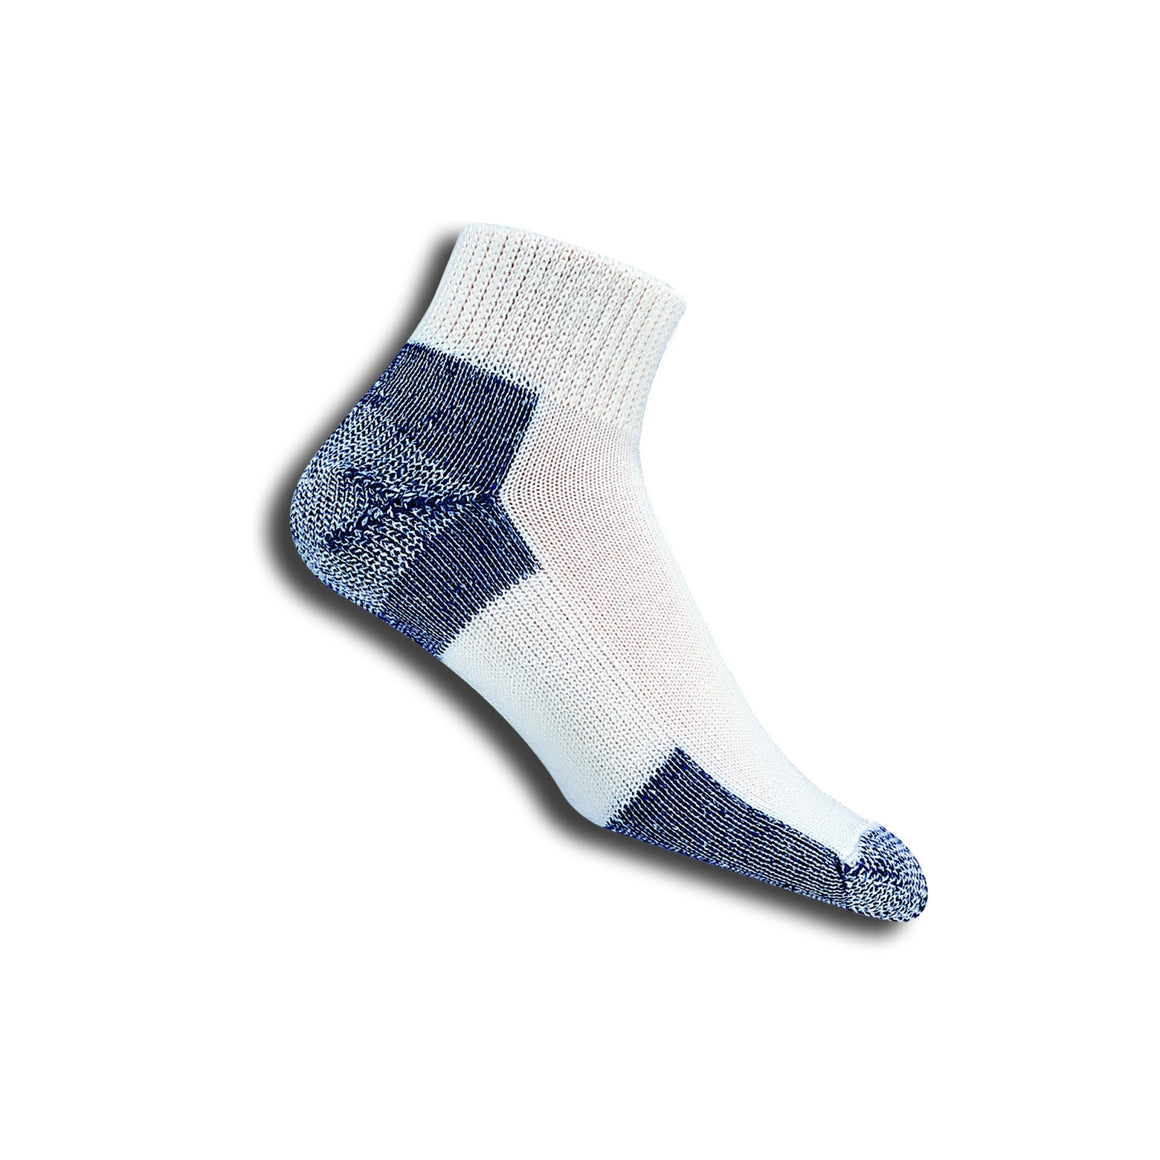 Thorlo Thick Cushion Quarter Running Socks